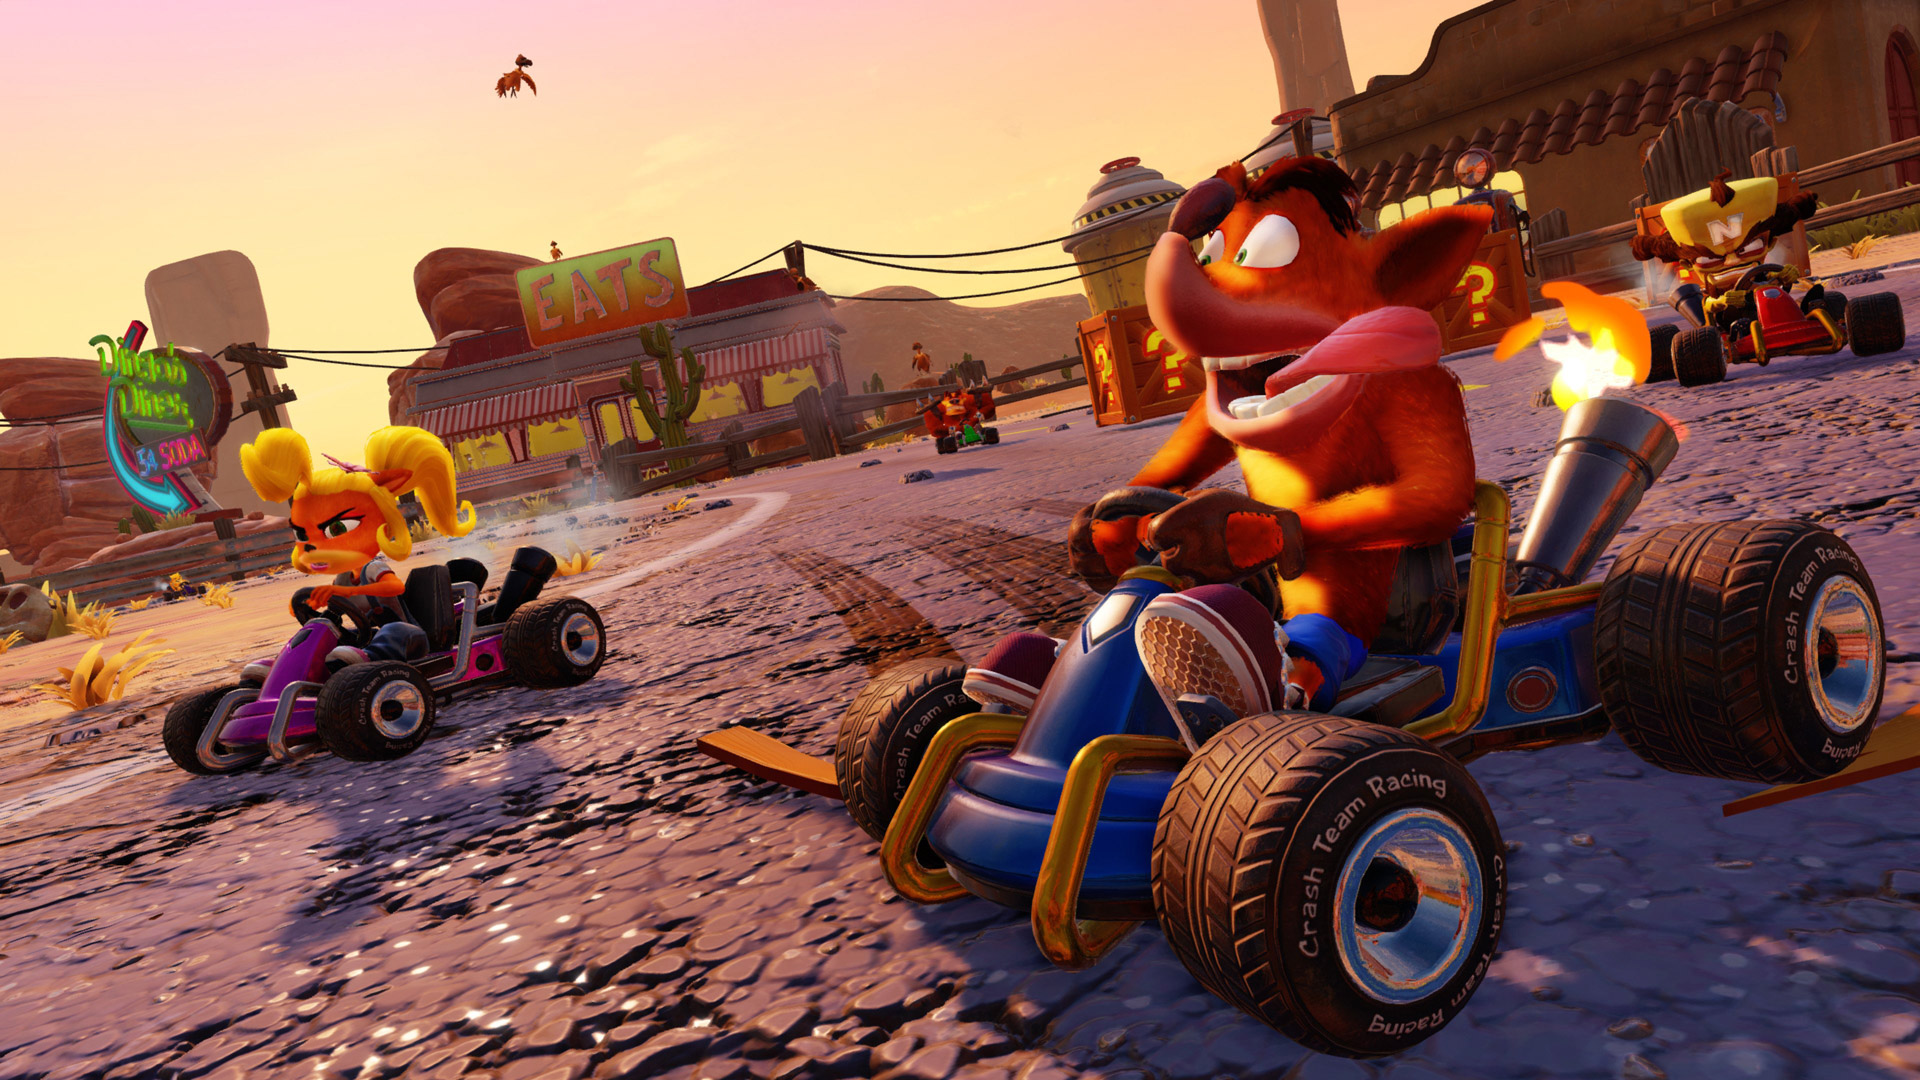 Free Crash Team Racing Nitro-Fueled Wallpaper in 1920x1080